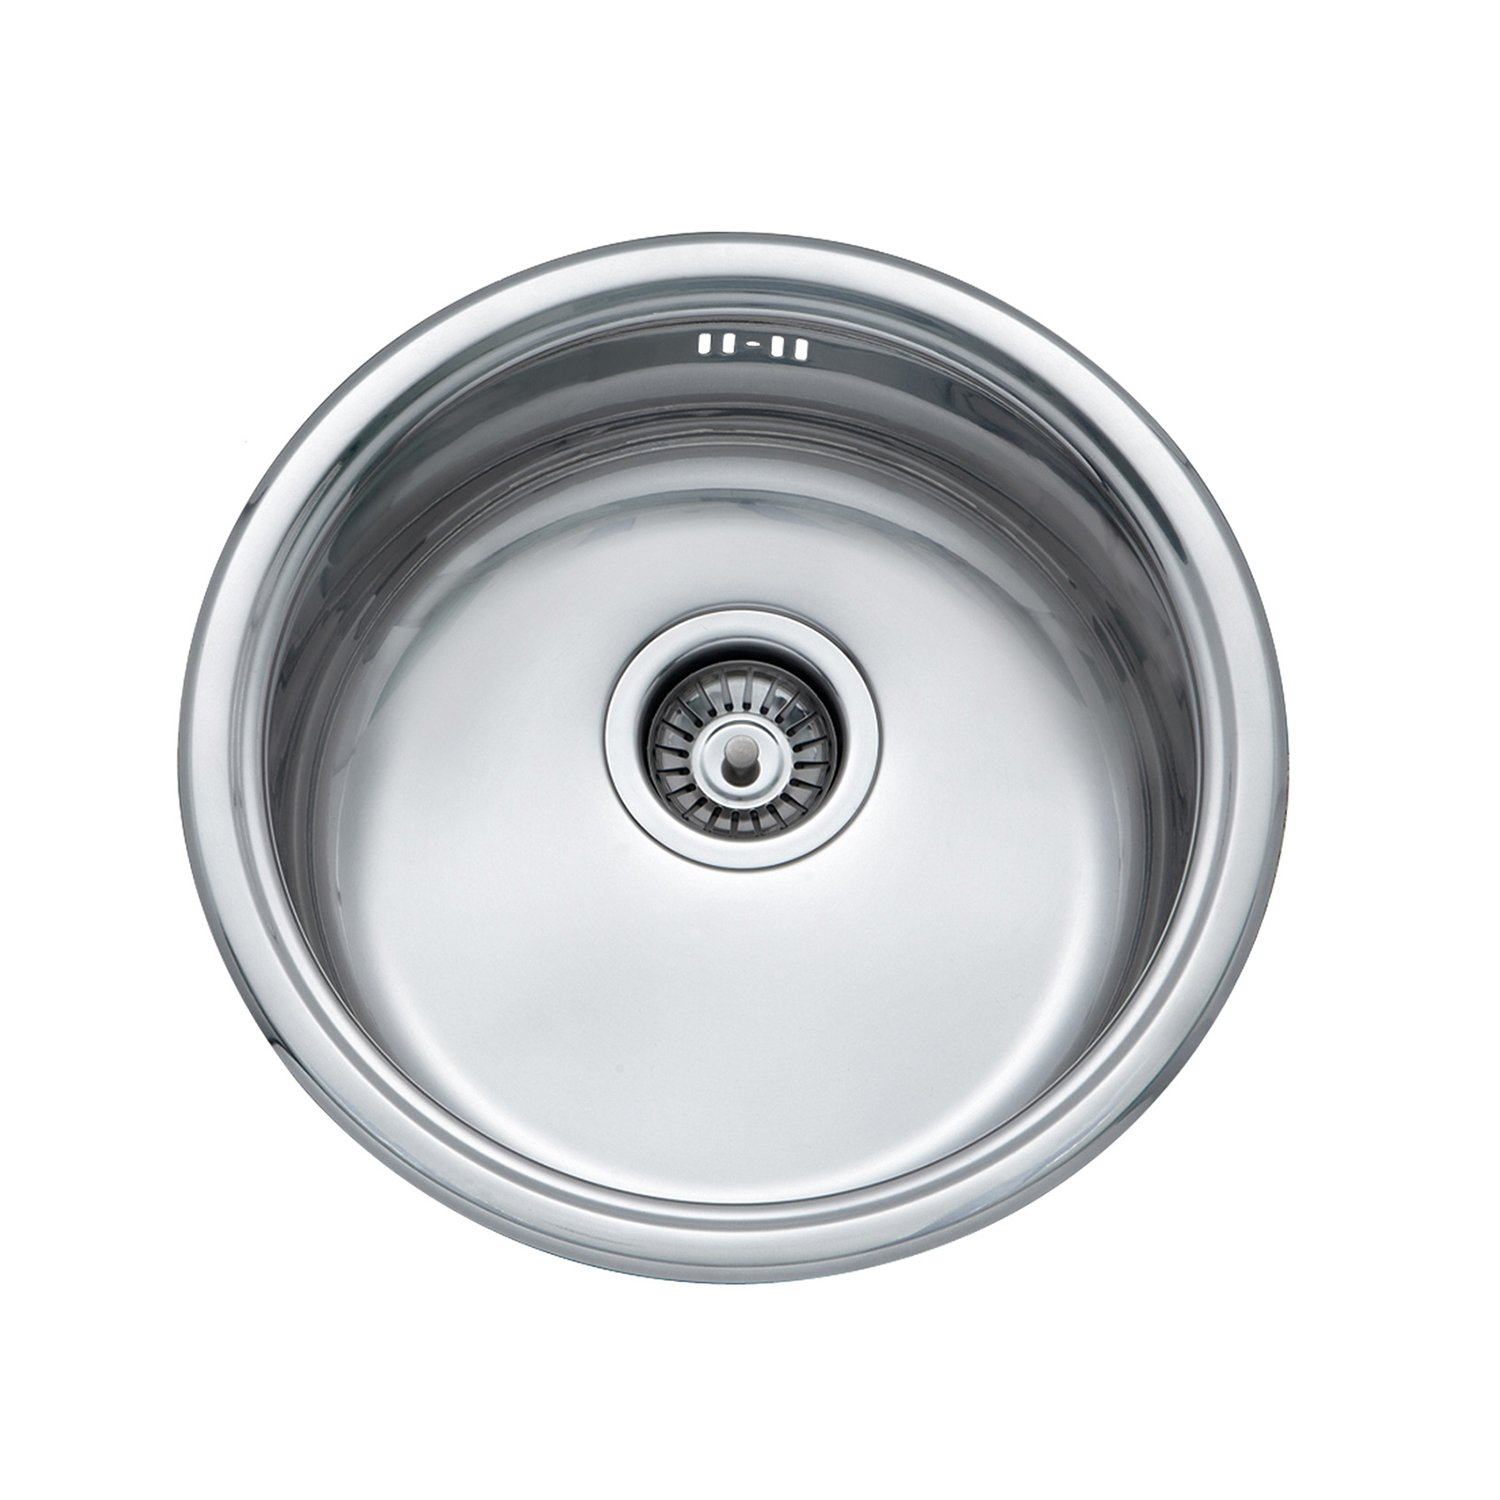 JASS FERRY 145mm Depth Drainer Stainless Steel Round Bowl Kitchen Sink with Strainer Waste Pipes Clips - 10 Year Guarantee